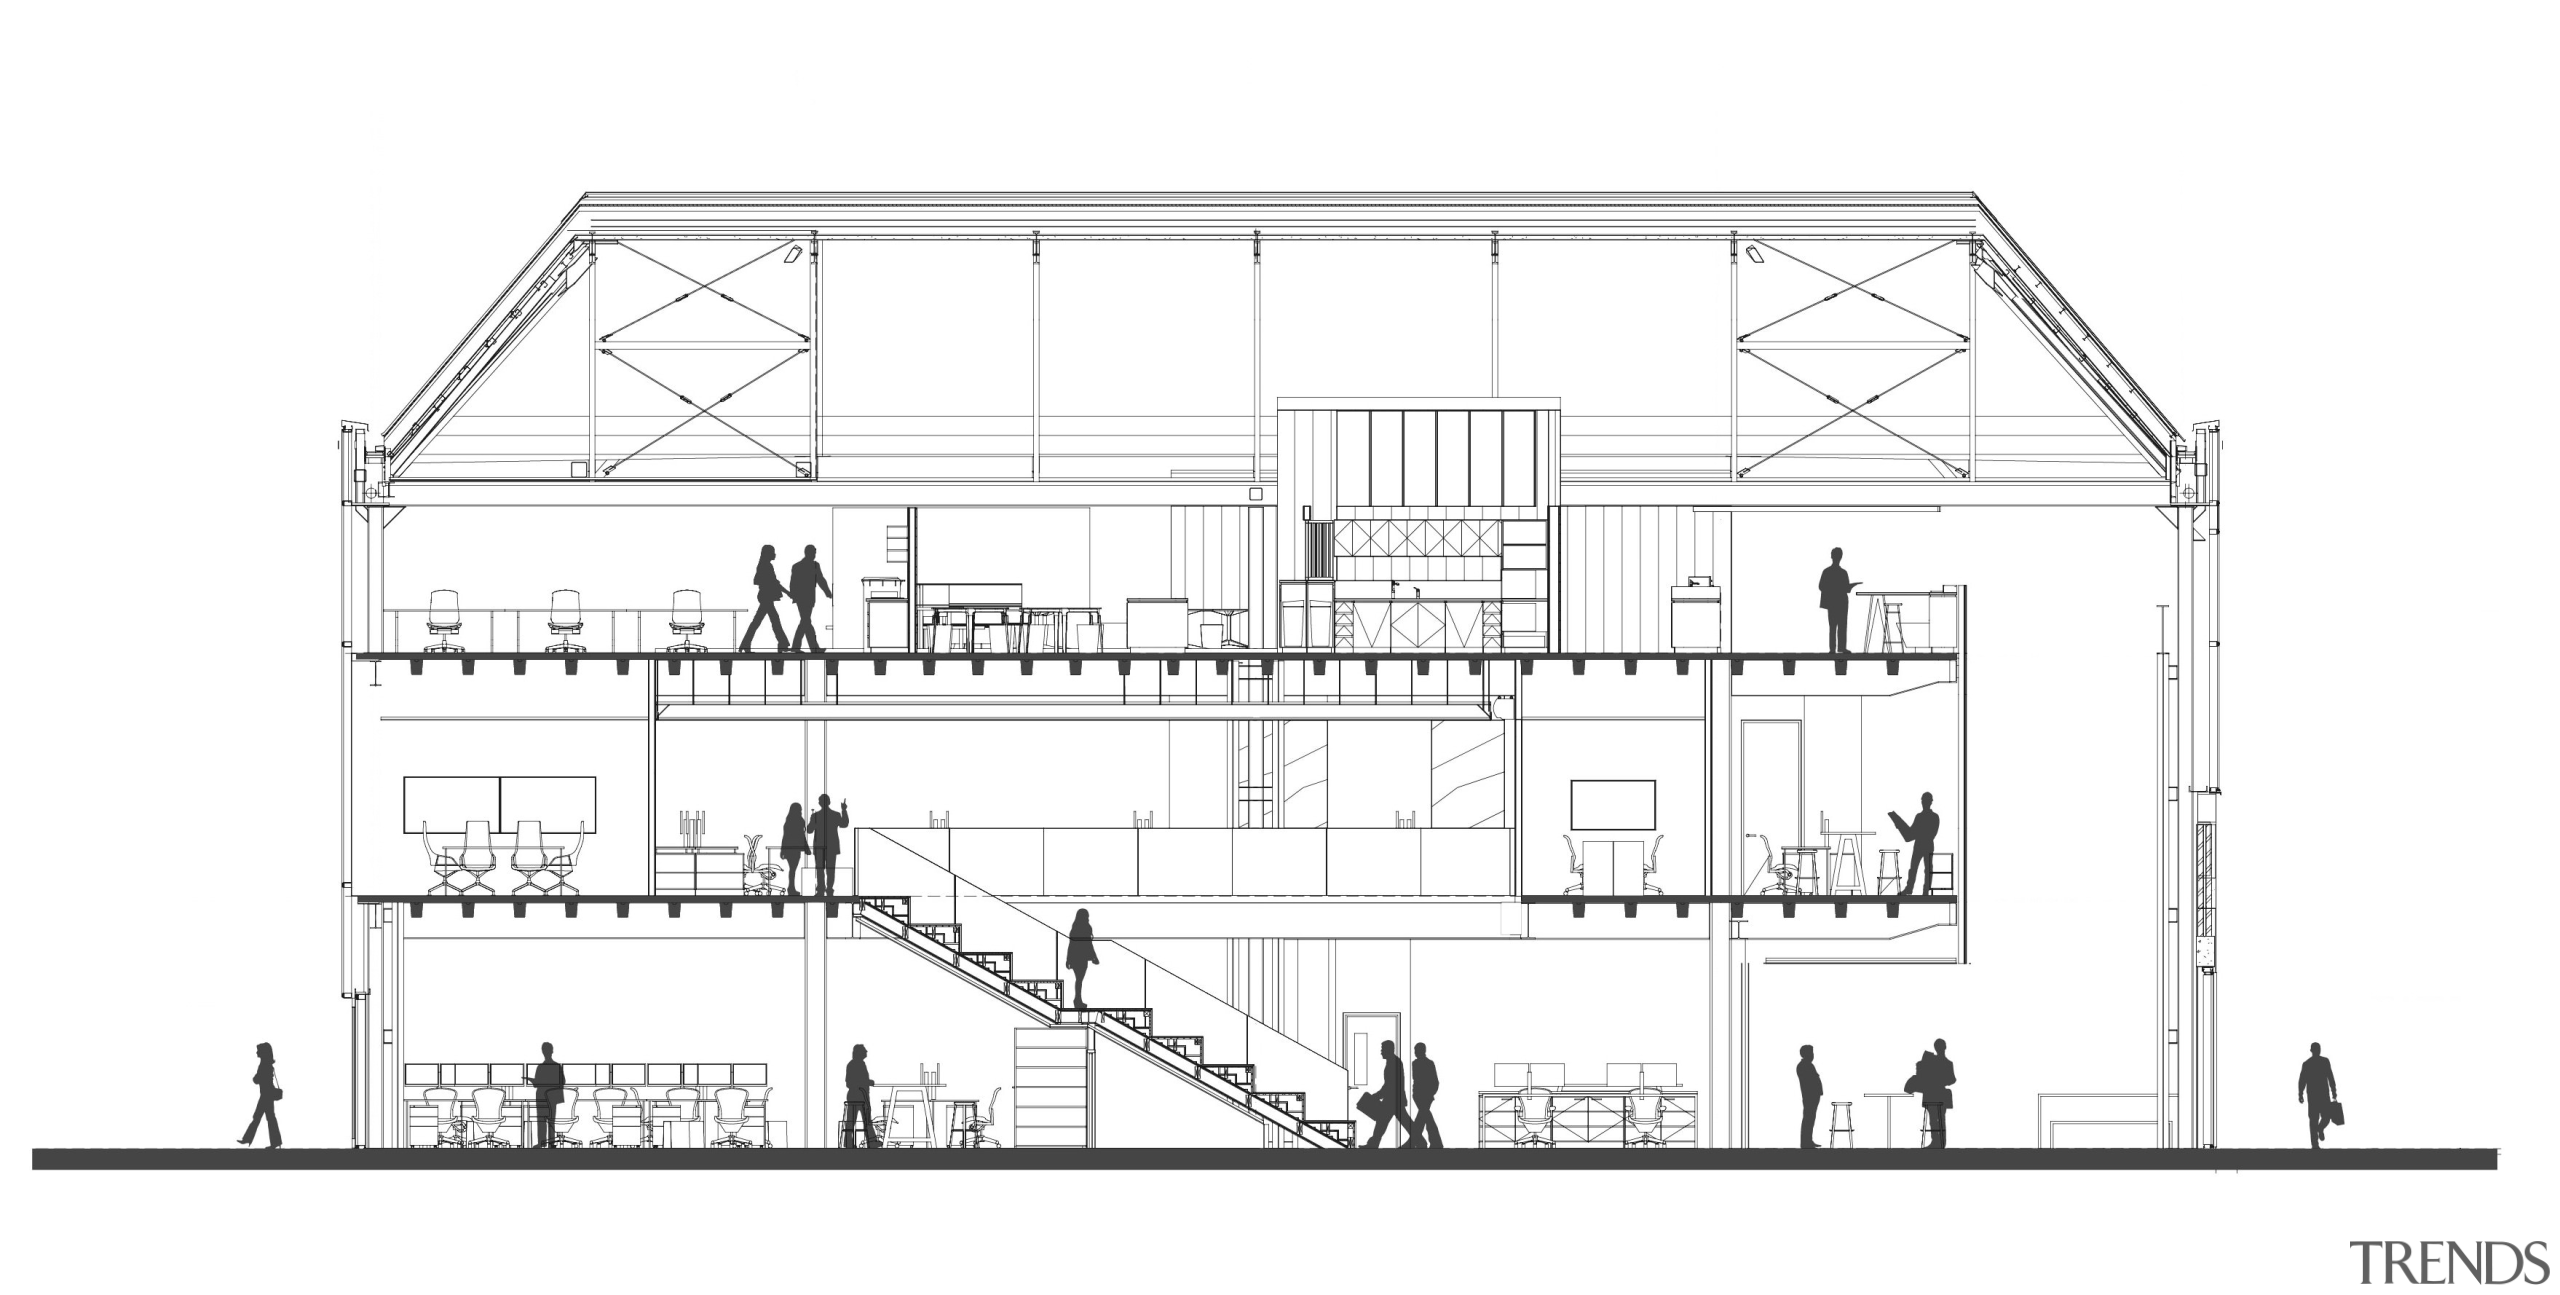 This cross-section of the Mason Bros building shows architecture, area, artwork, black and white, design, diagram, drawing, elevation, facade, floor plan, home, house, line, line art, plan, product design, residential area, structure, technical drawing, white